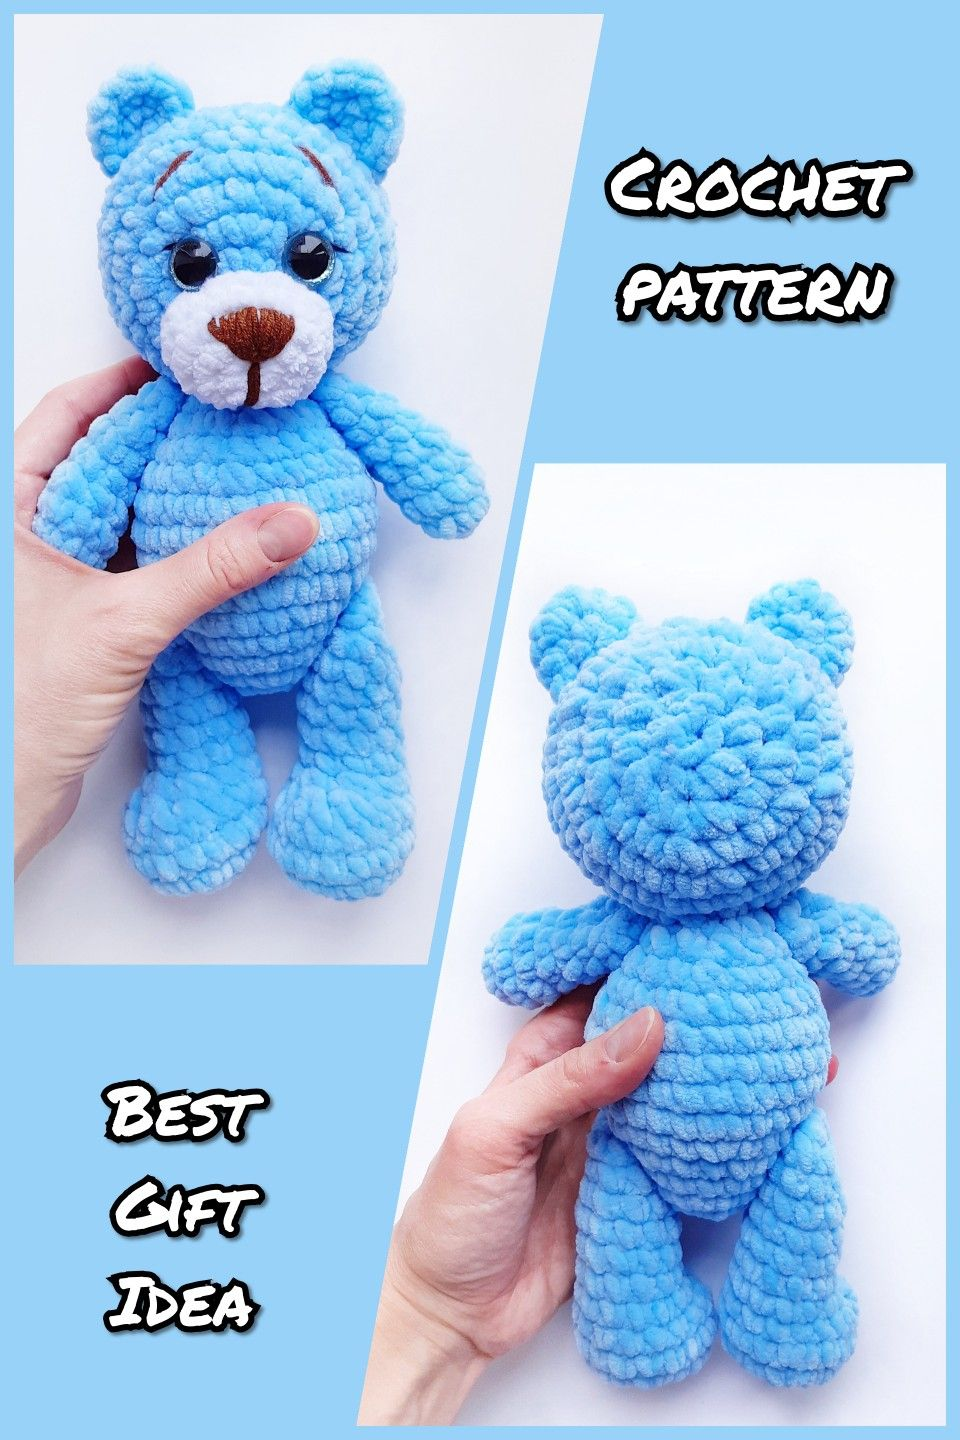 CROCHET PATTERN bear toy - Amigurumi pattern teddy bear - crocheted toy Pattern in English - Crochet #beartoy